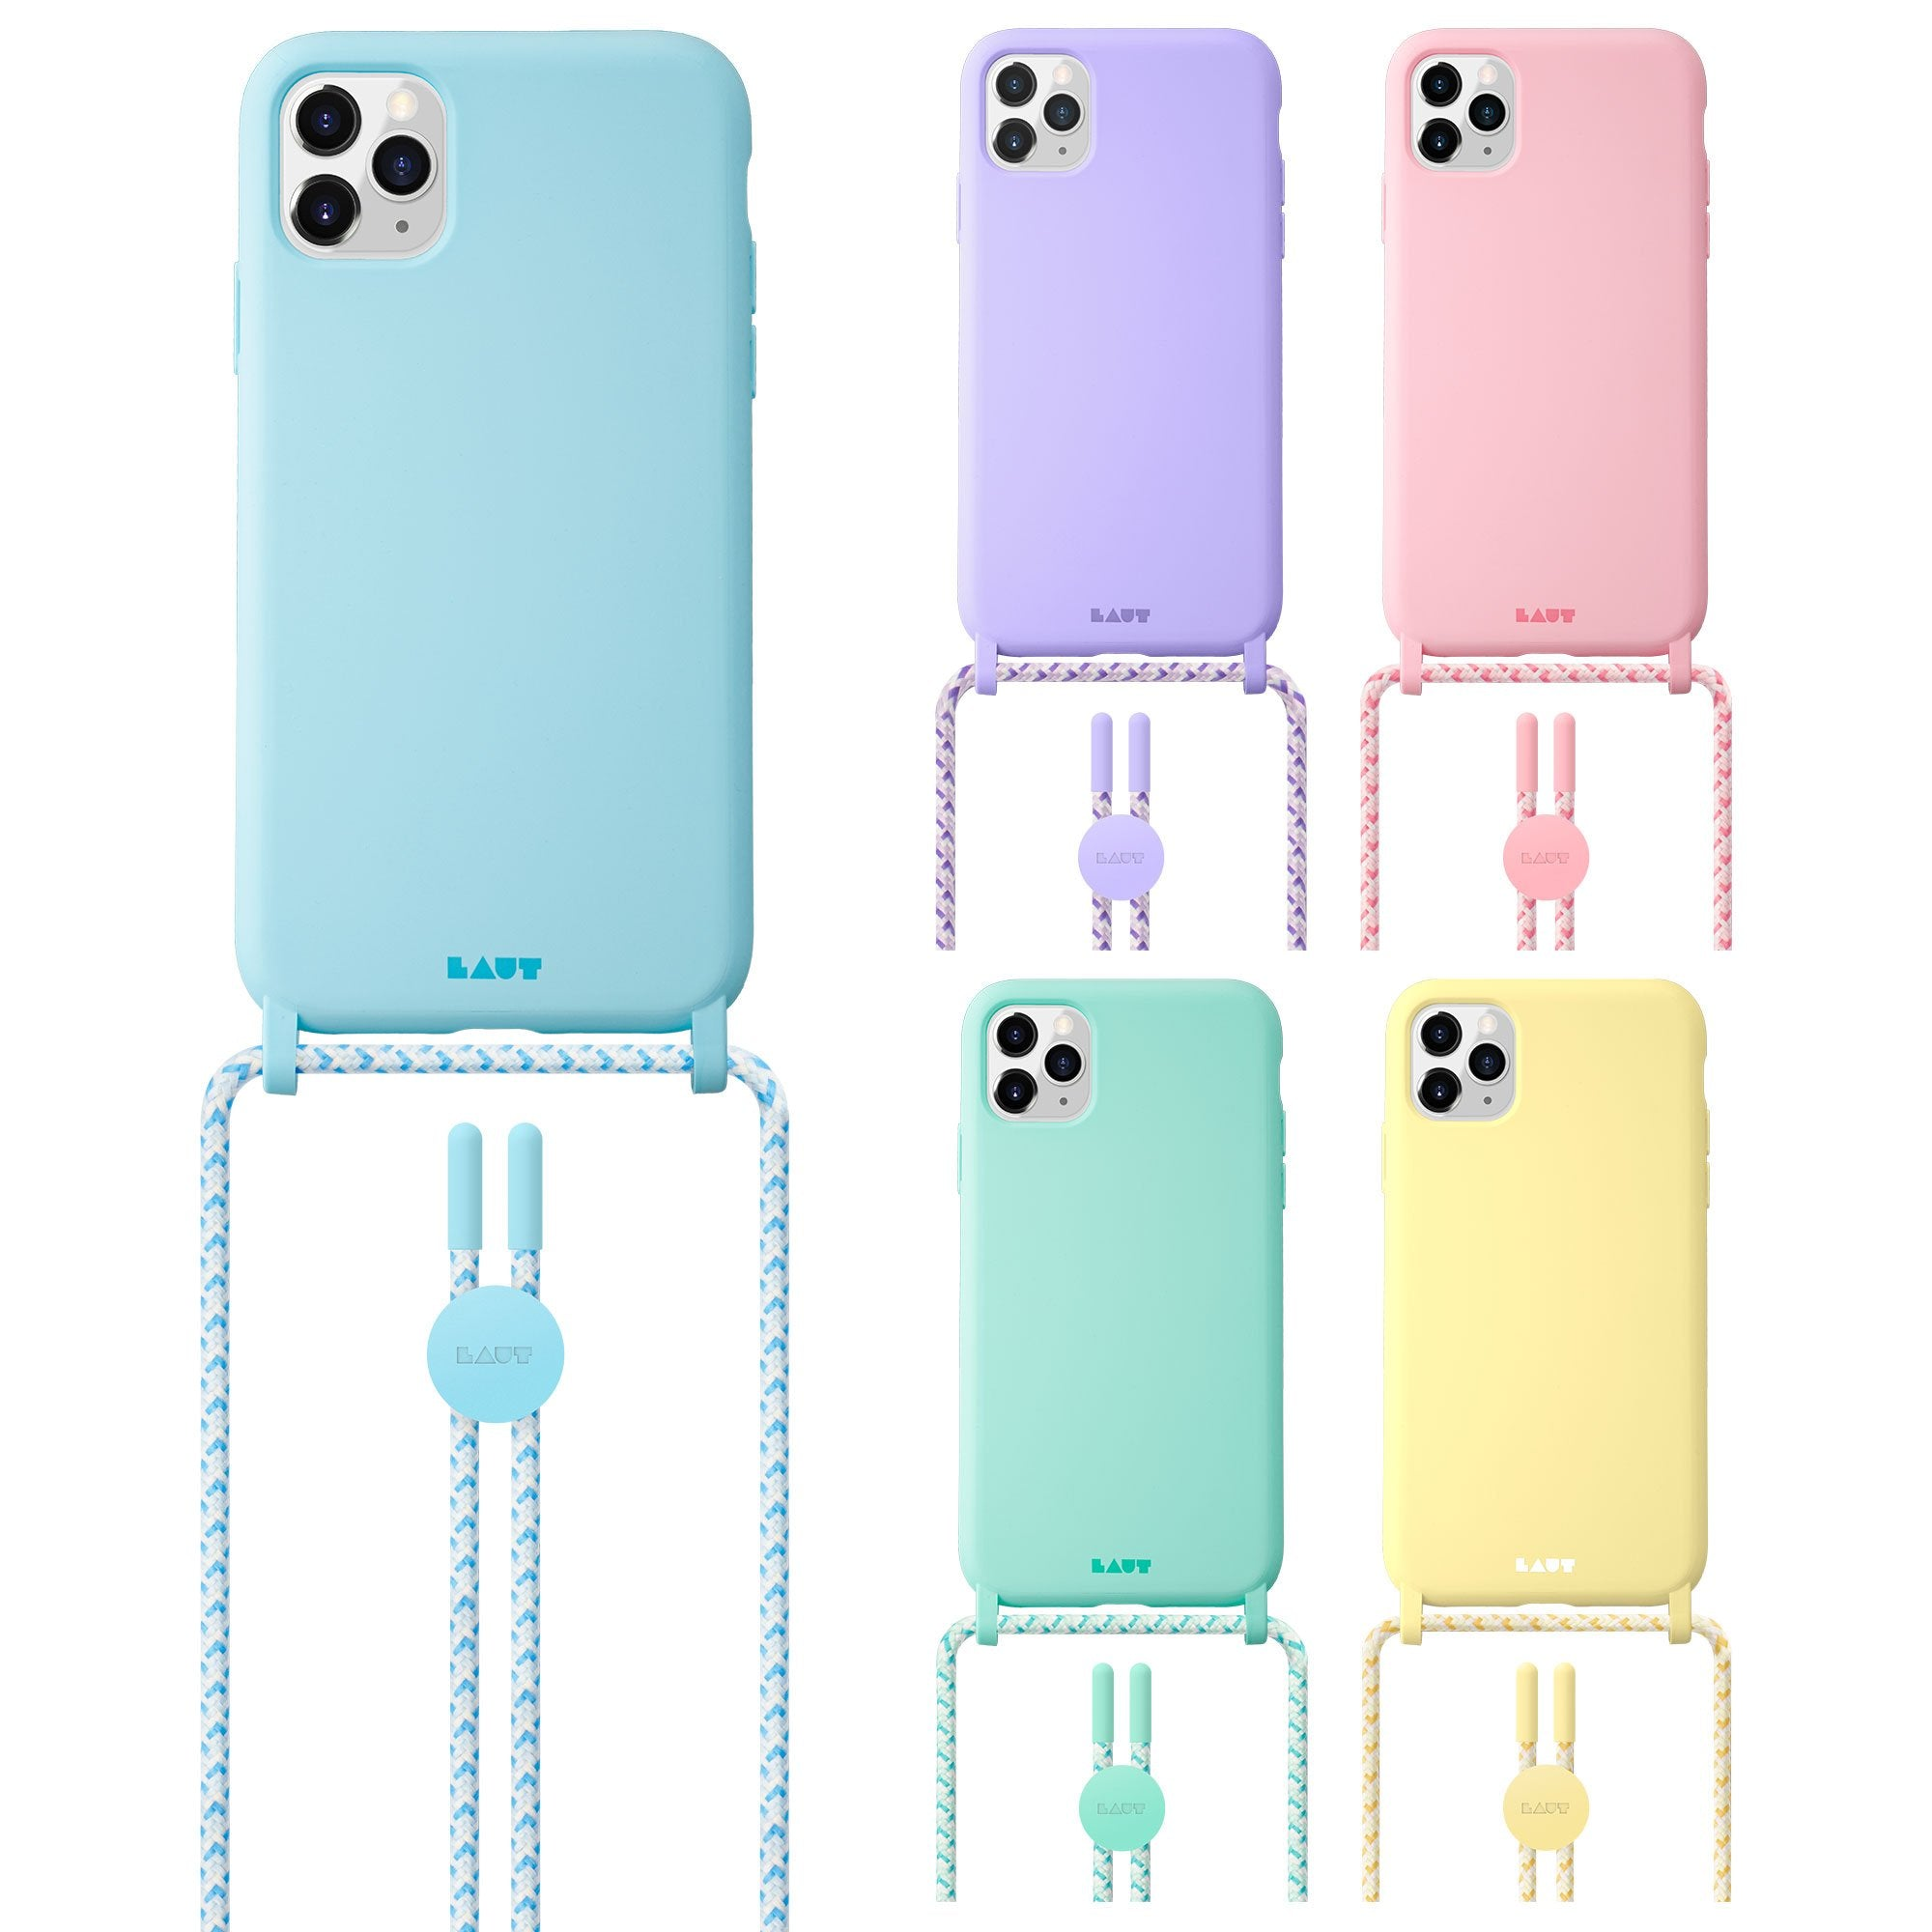 HUEX PASTELS NECKLACE case für die iPhone 12-Serie